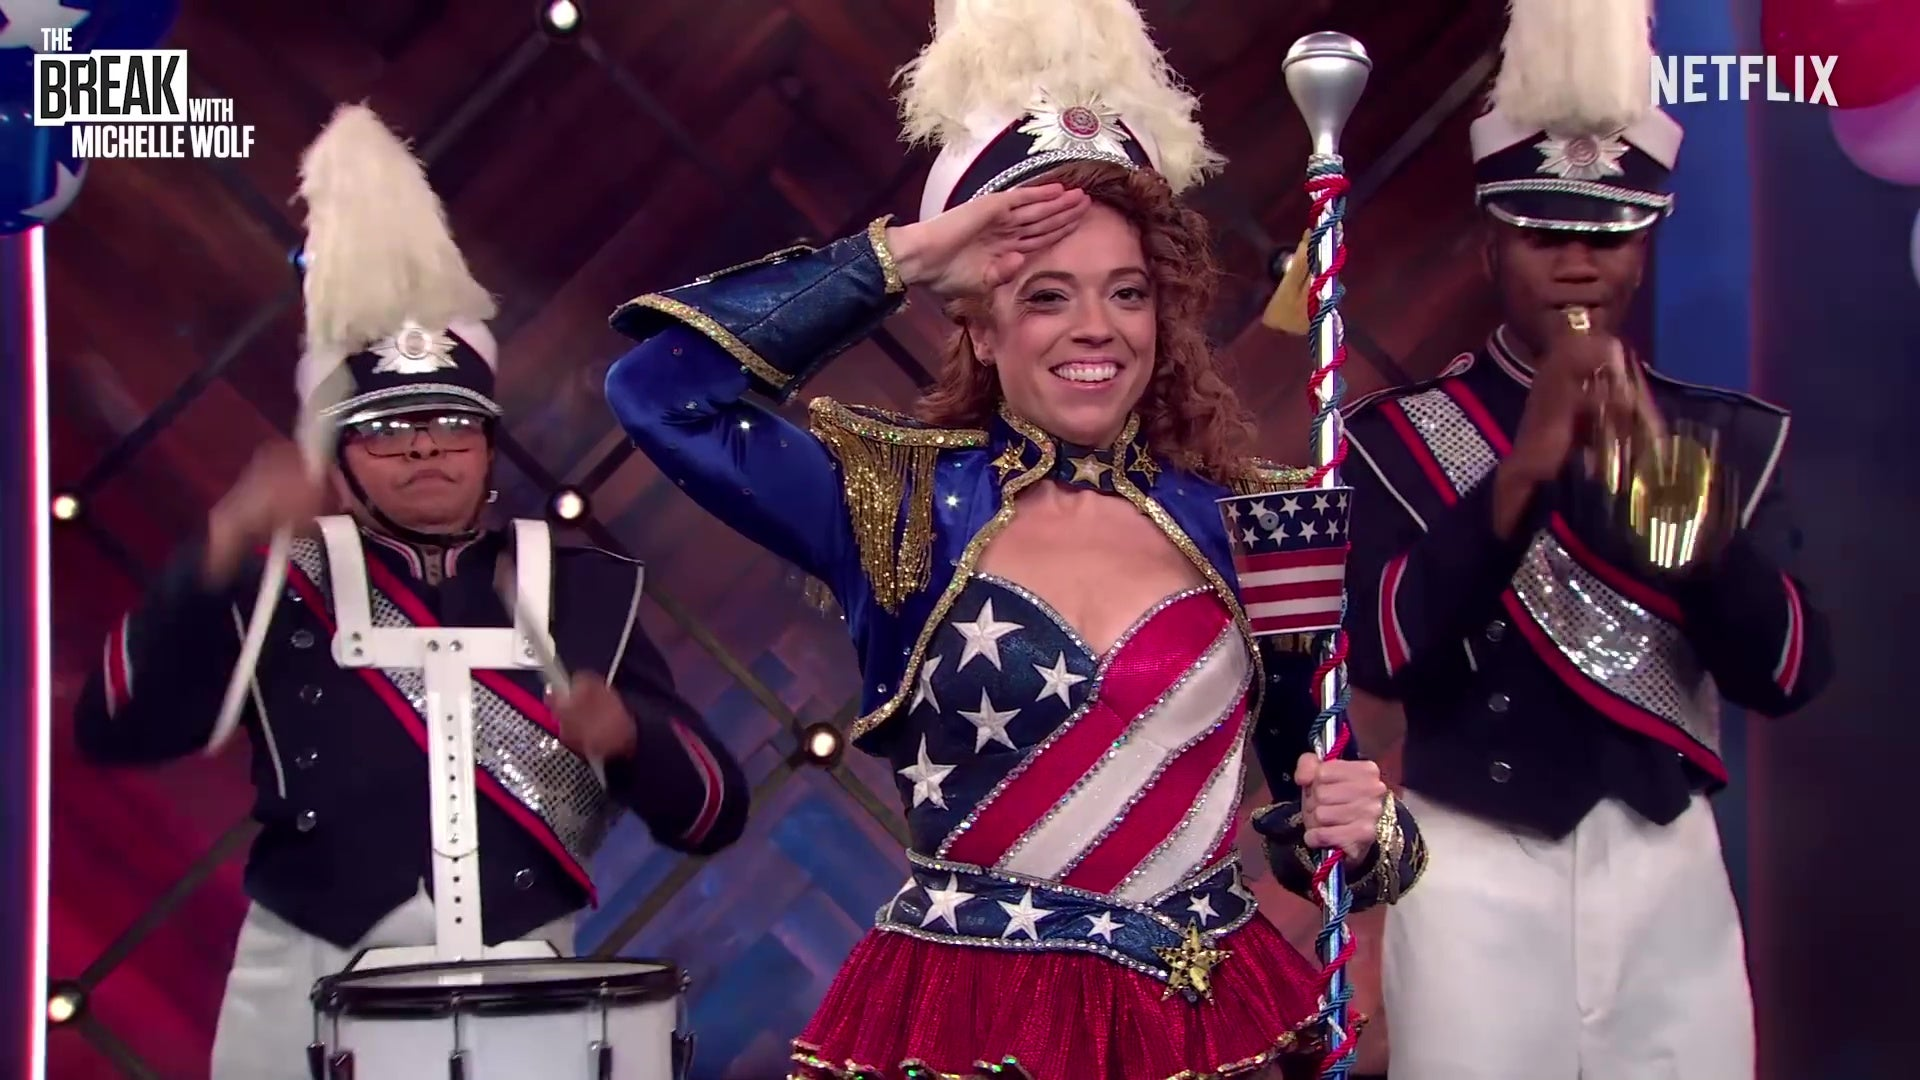 Michelle Wolf, dressed in red, white, and blue, salutes abortion as a marching band plays behind her.